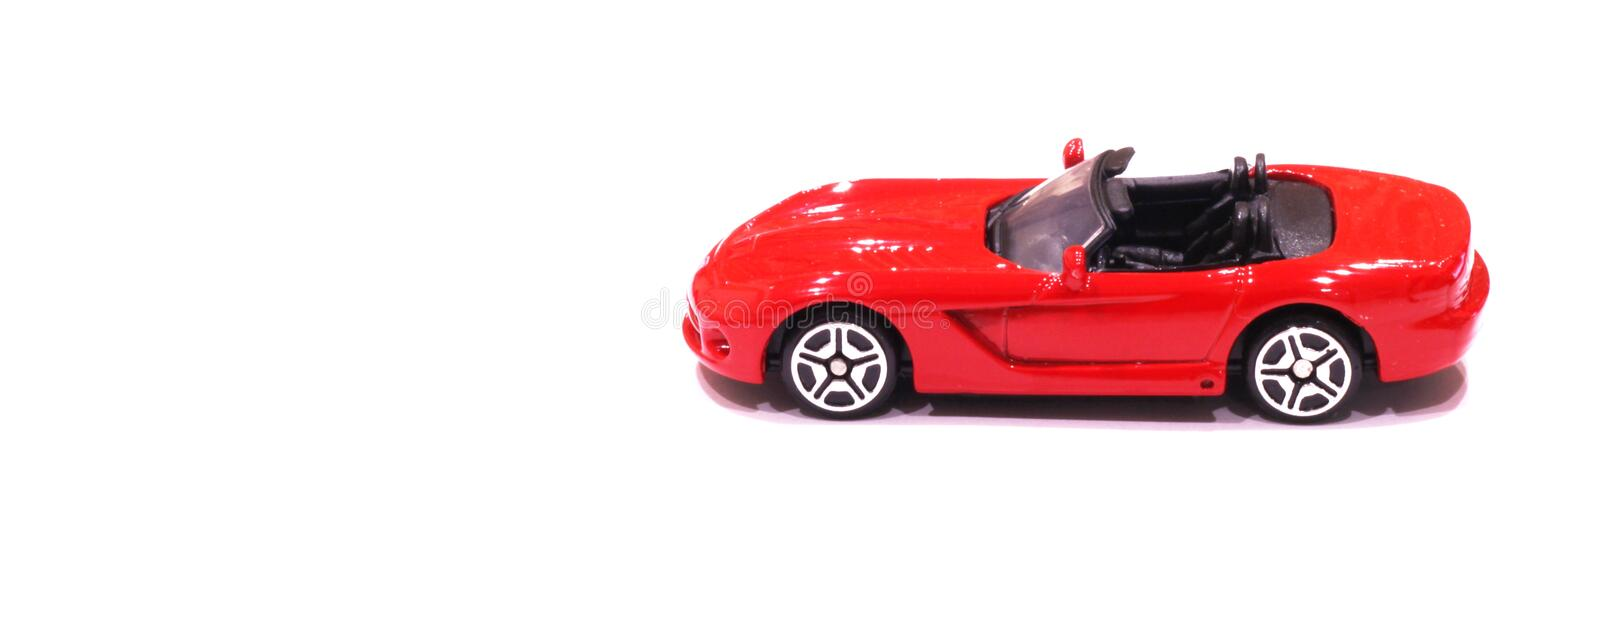 Red toy car with an open top. On a white background stock photos